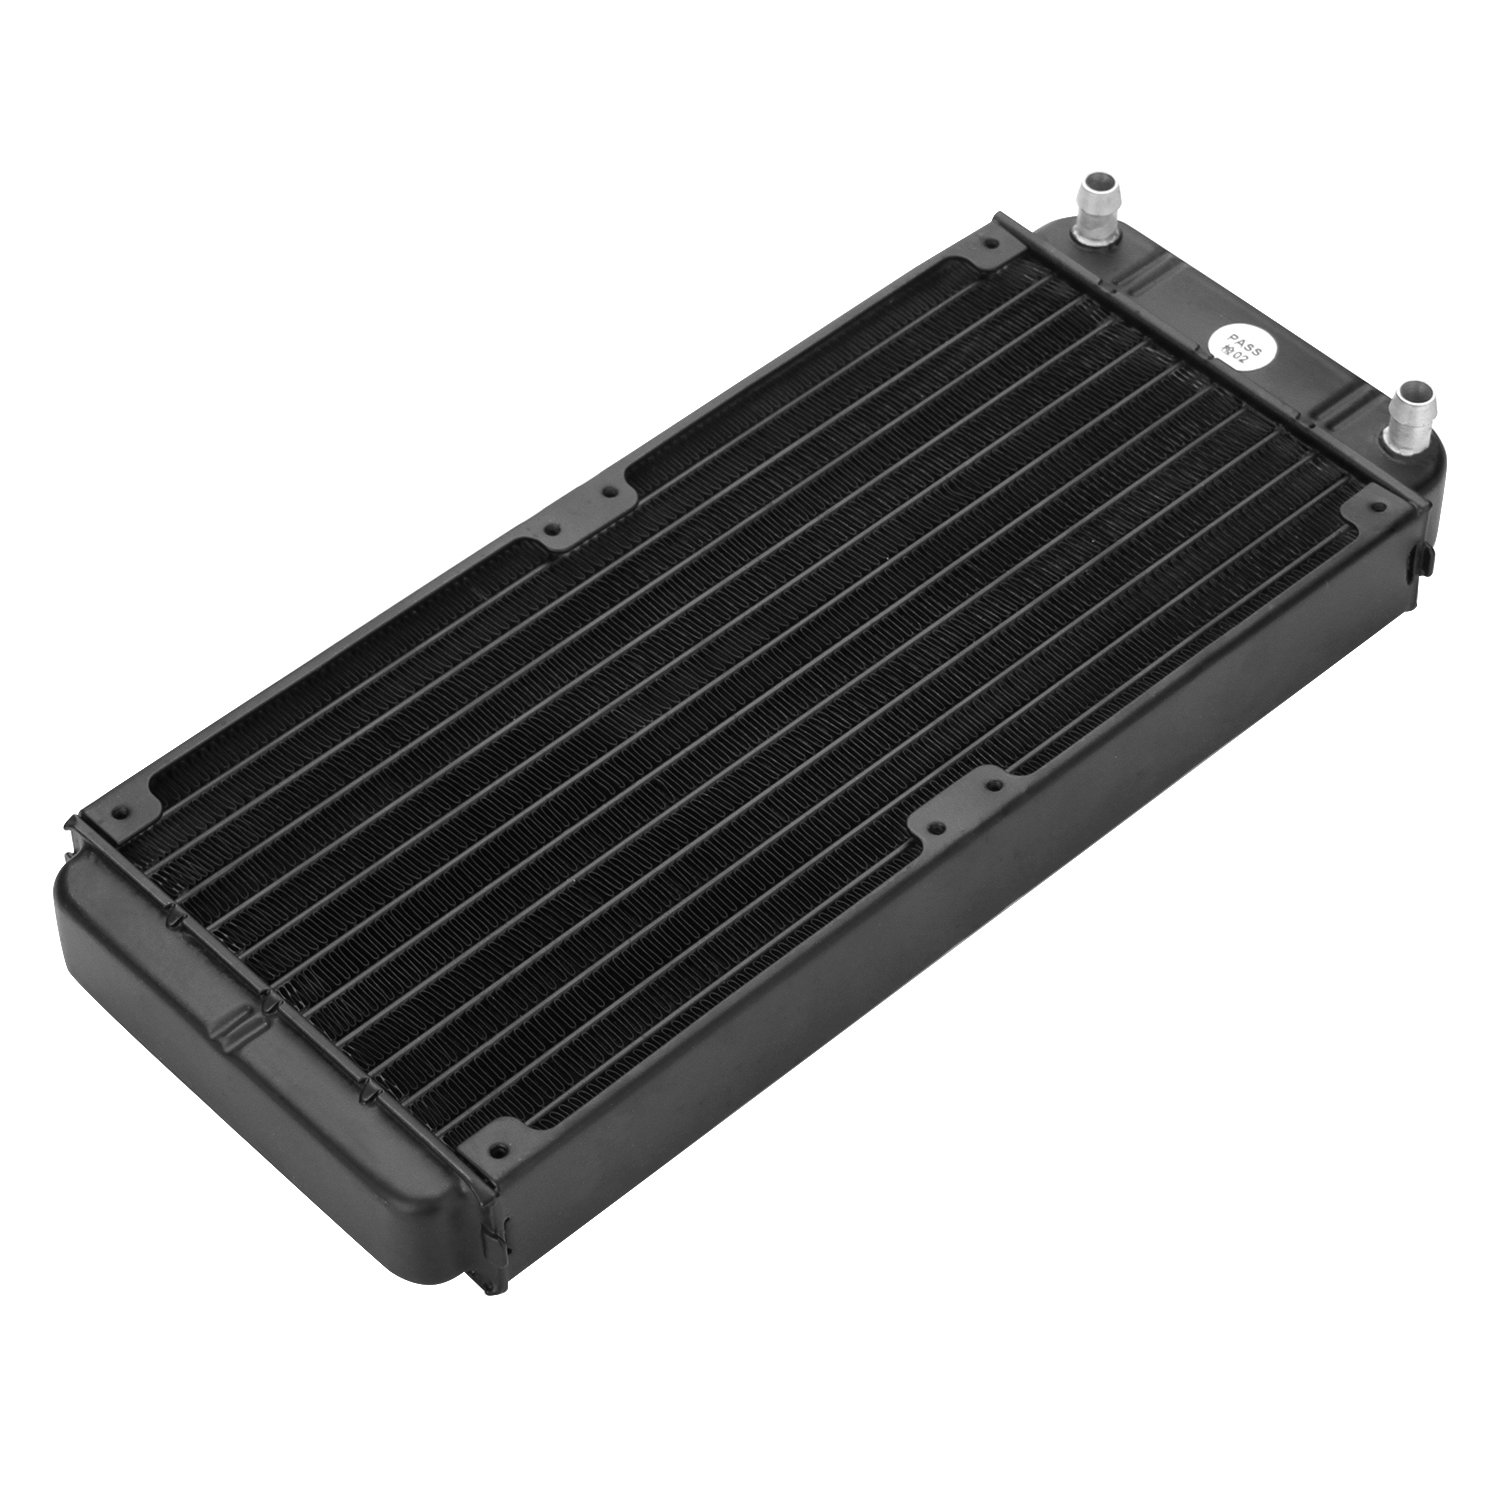 Fitnate 12 Pipe Aluminum Heat Exchanger Radiator for PC CPU CO2 Laser Water Cool System Computer R240, 10.62Inch